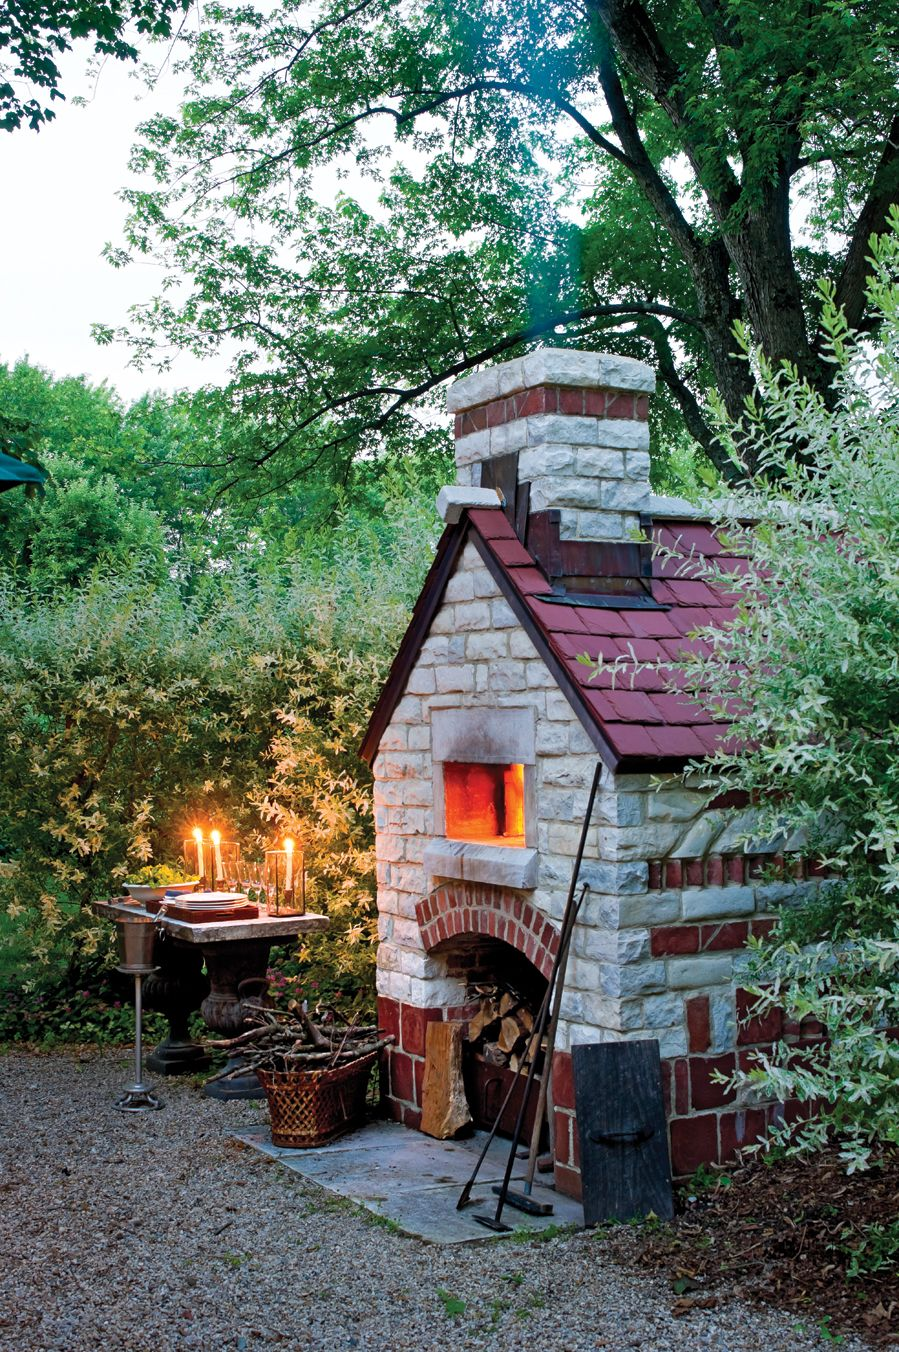 This Is An Amazing Pizza Oven Photo By Rob Cardillo Design By